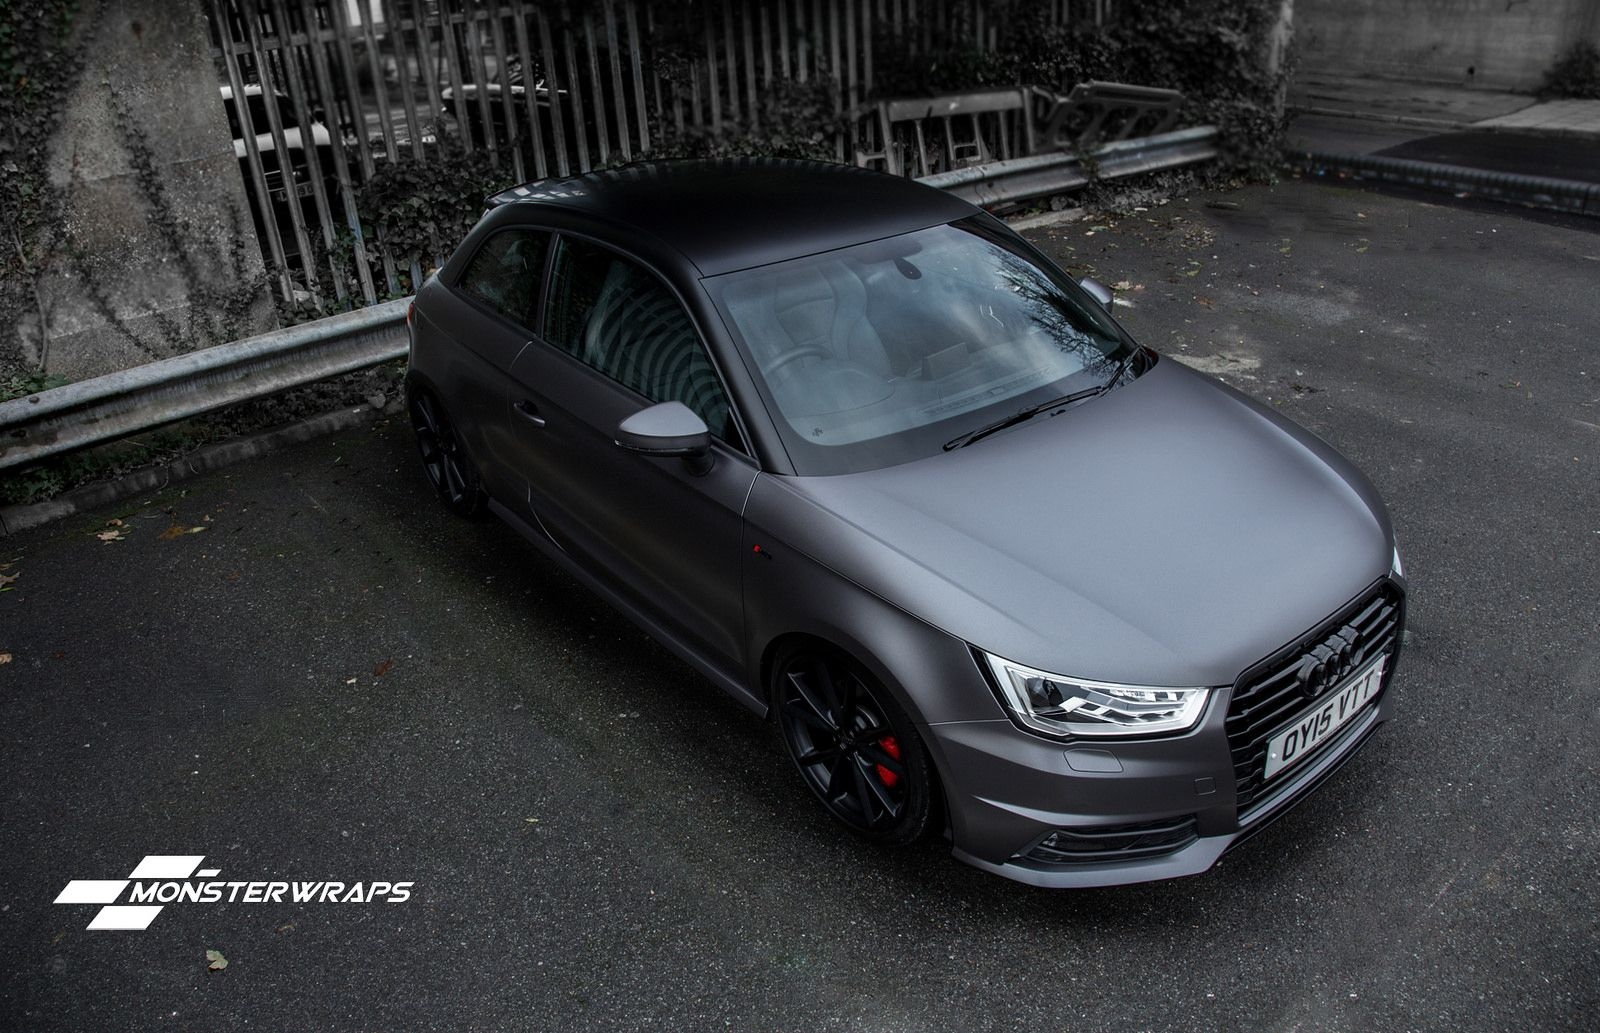 Audi A1 Modified Elegant Audi A1 Satin Grey Black Full Wrap Cars Audi A1 Black Audi Audi-2022 Of Inspirational Audi A1 Modified